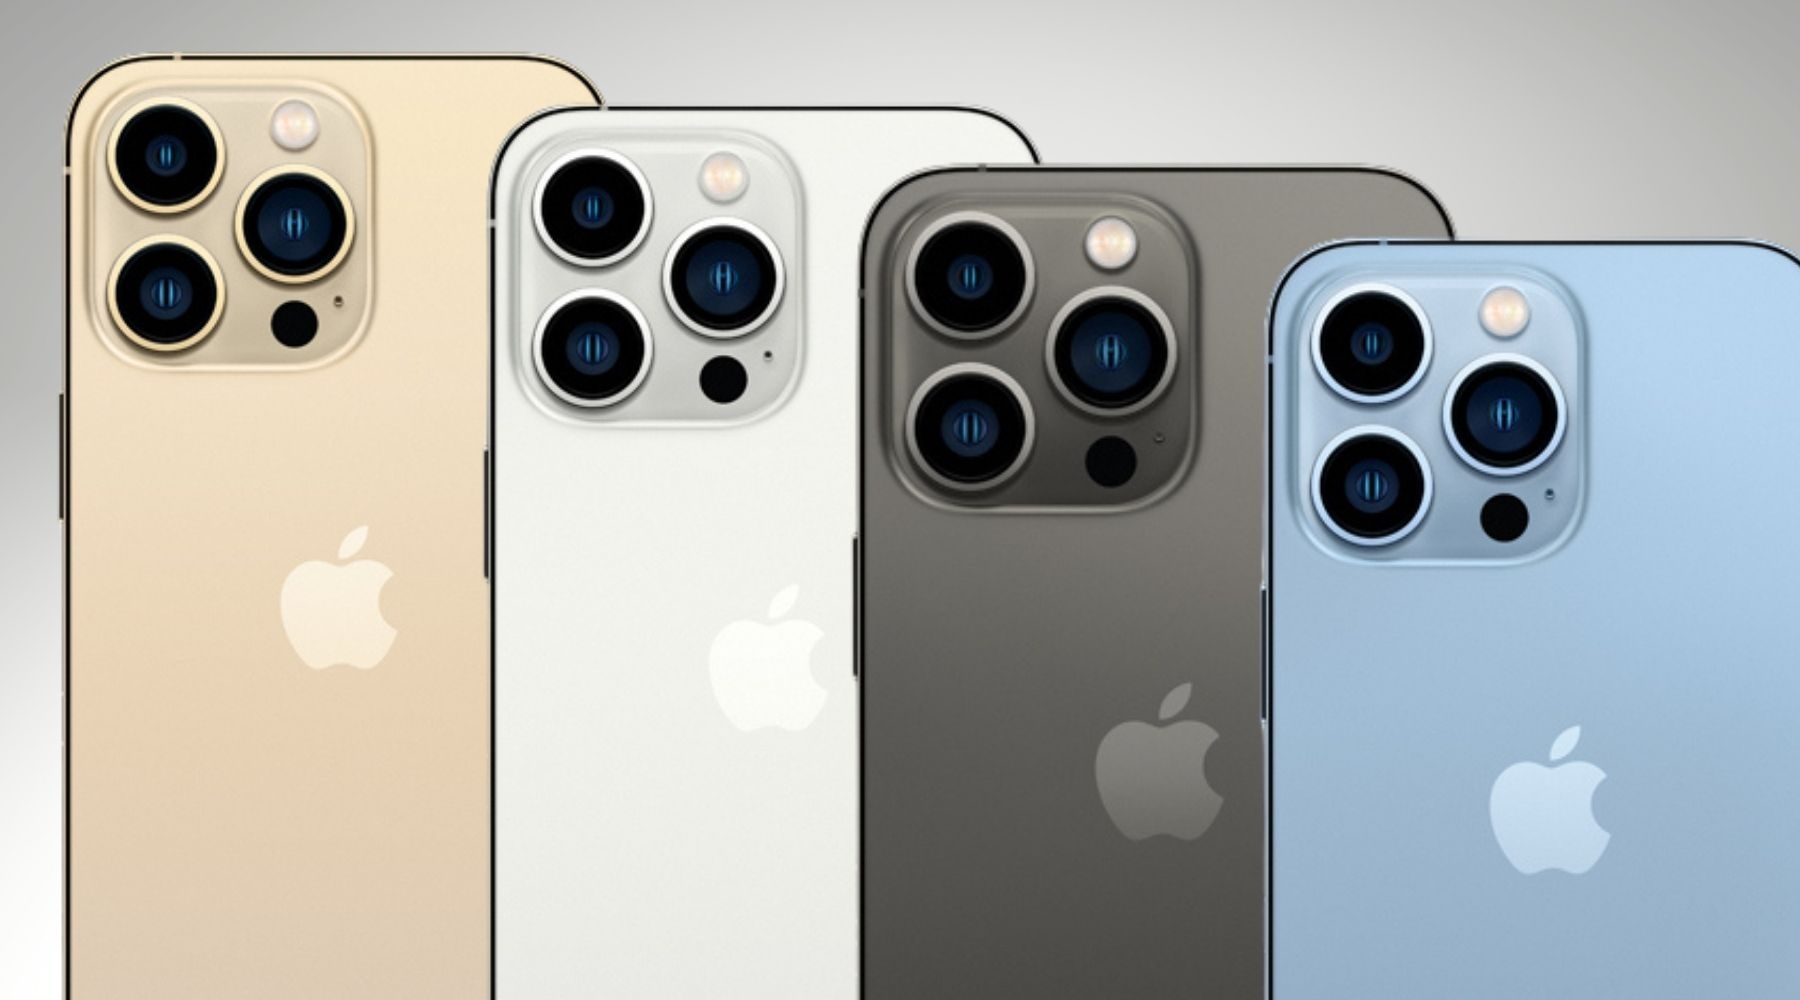 Apple iPhone 13 Pro: What you need to know - finder.com.au